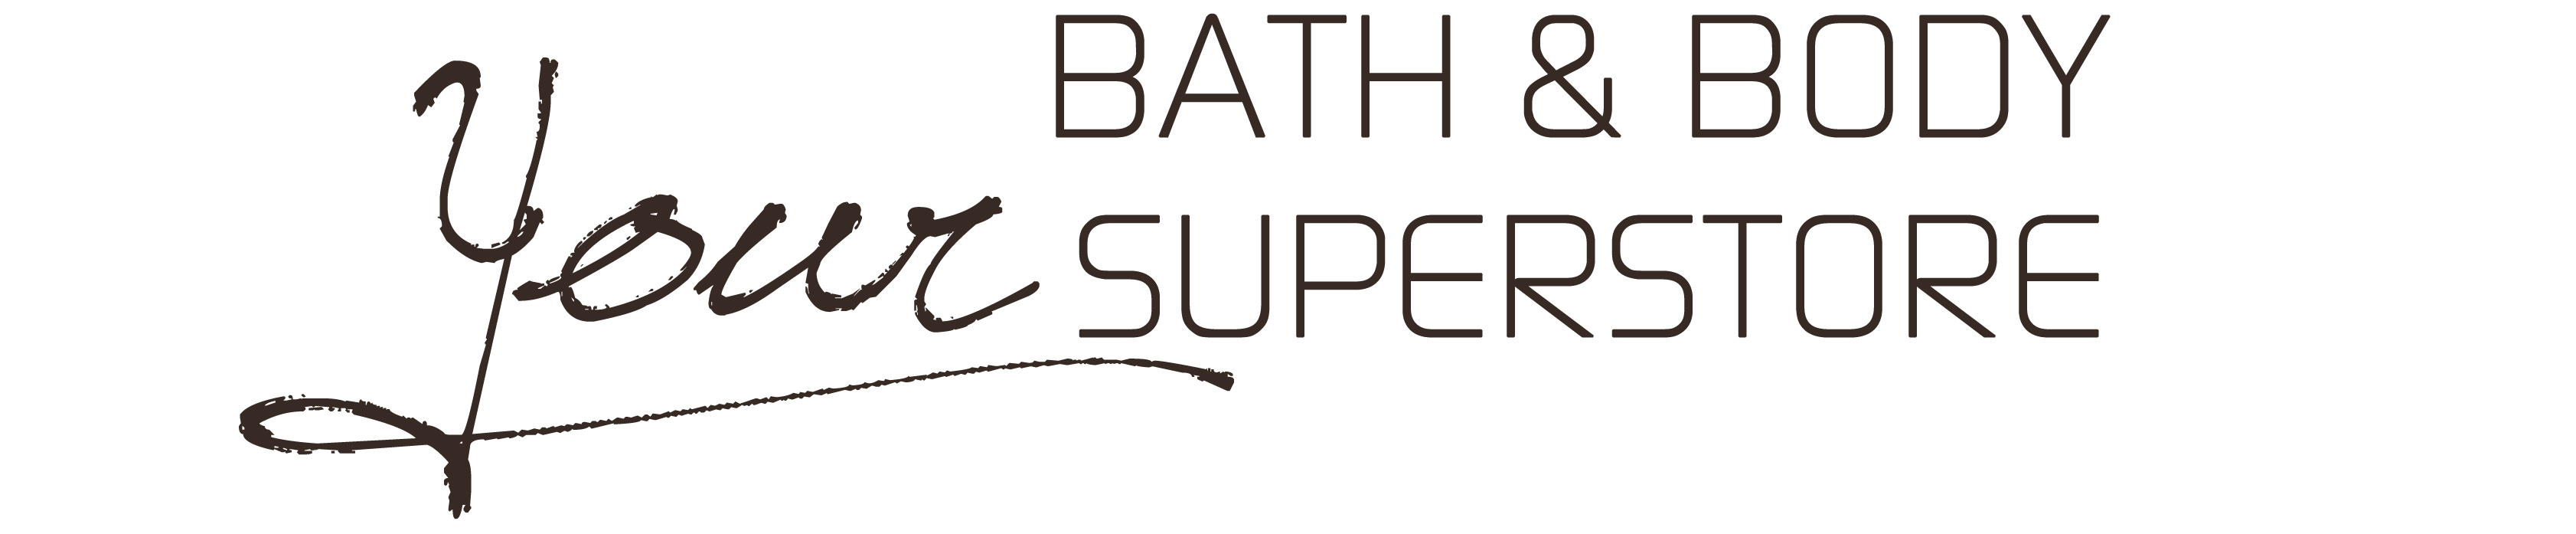 The Midwest Sea Salt Company - Your bath and body superstore